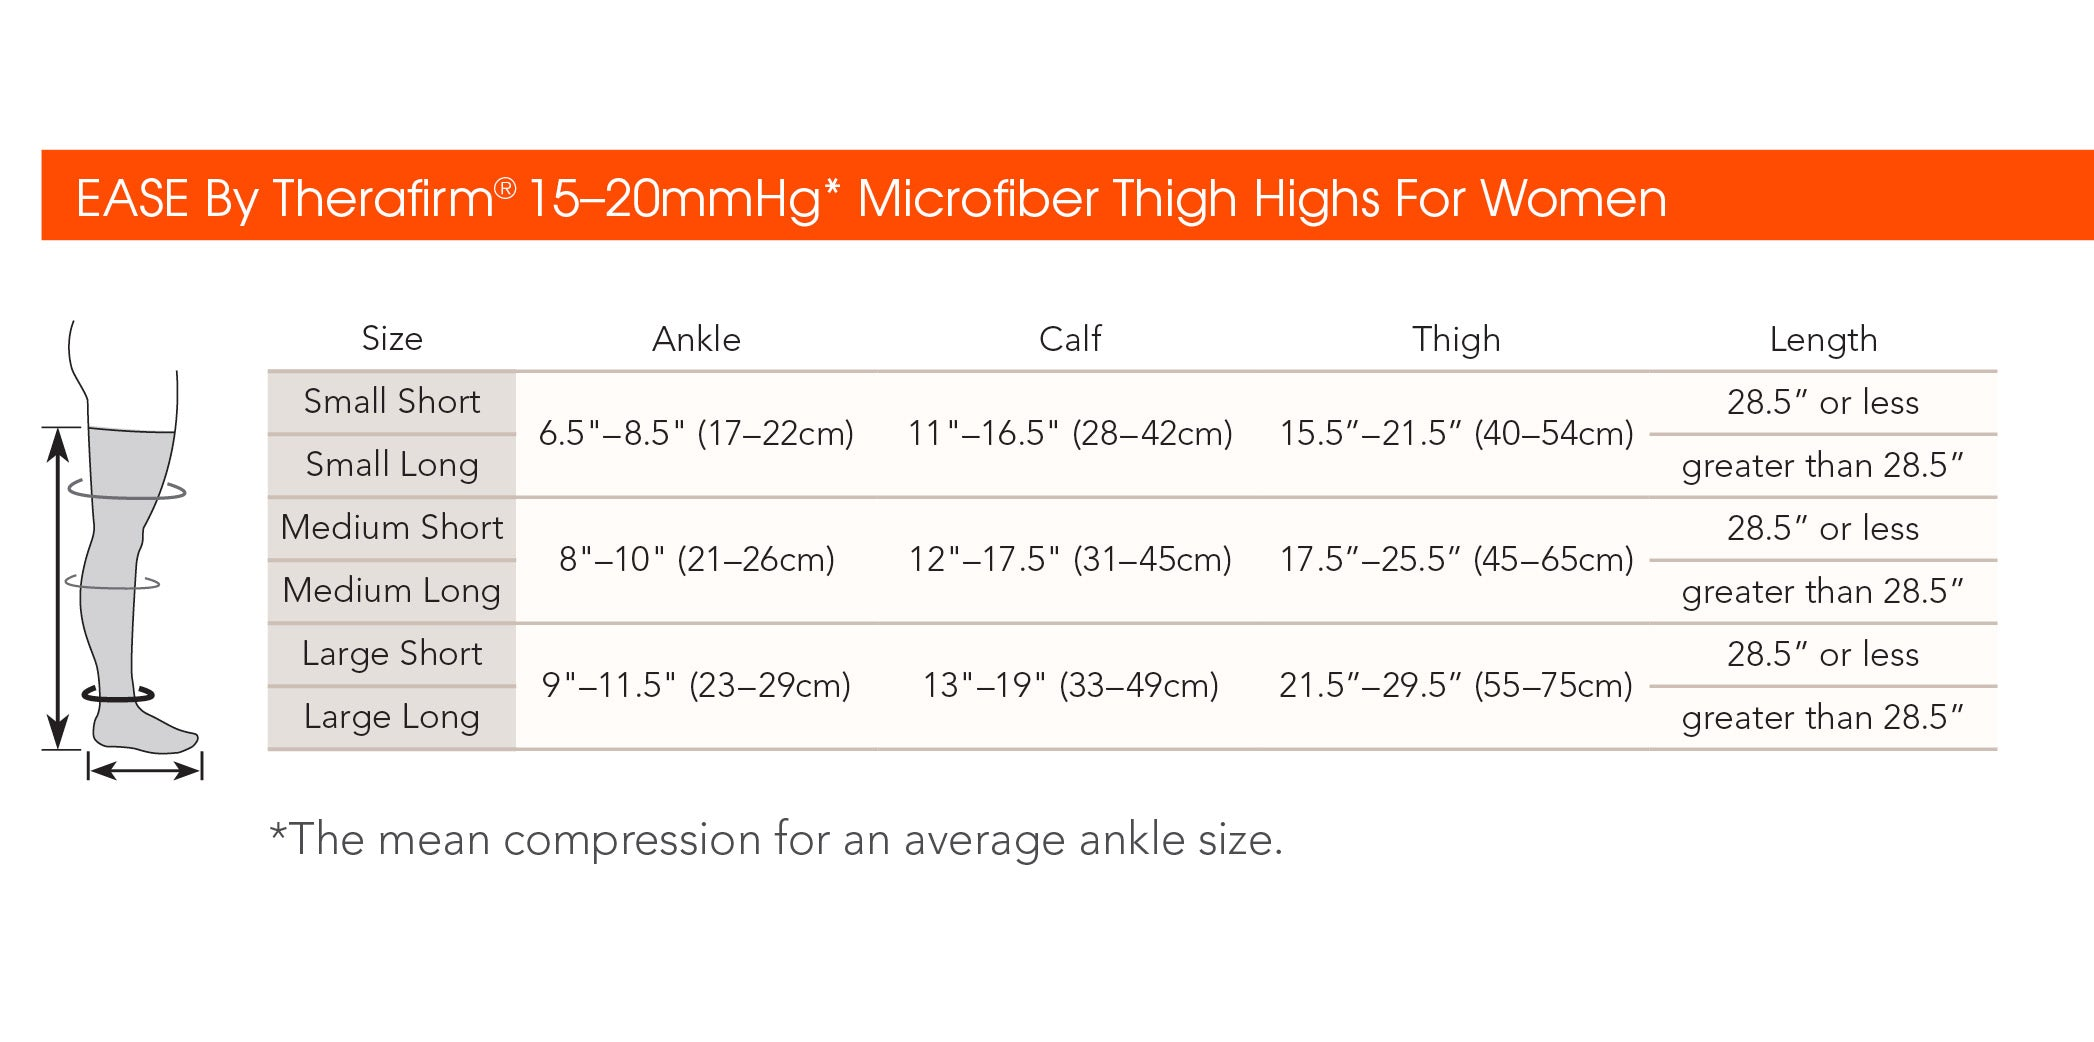 Ease Microfiber Thigh High Size Chart